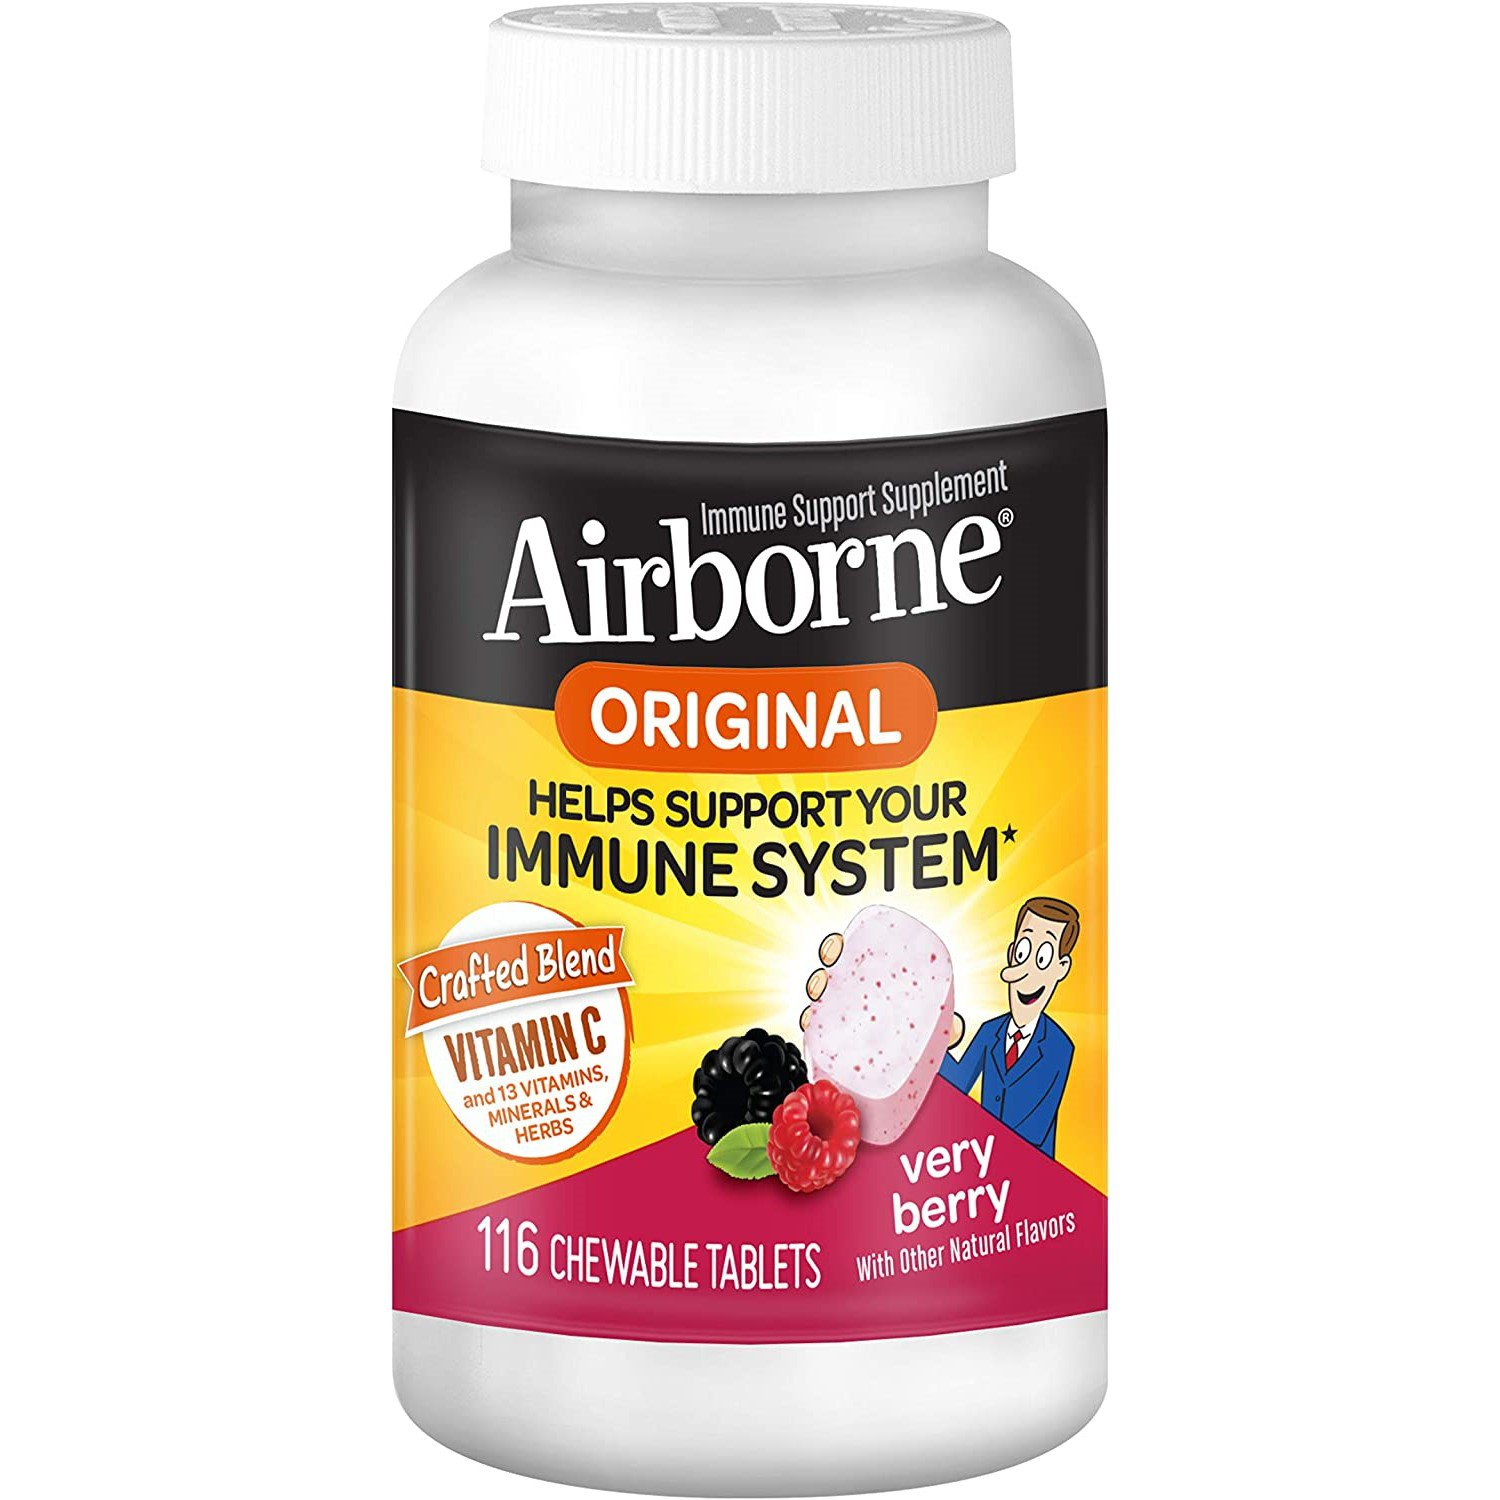 Airborne Original Immune Support Chewable Tablets 116 ct Very Berry, 1000 mg Vitamin C per serving